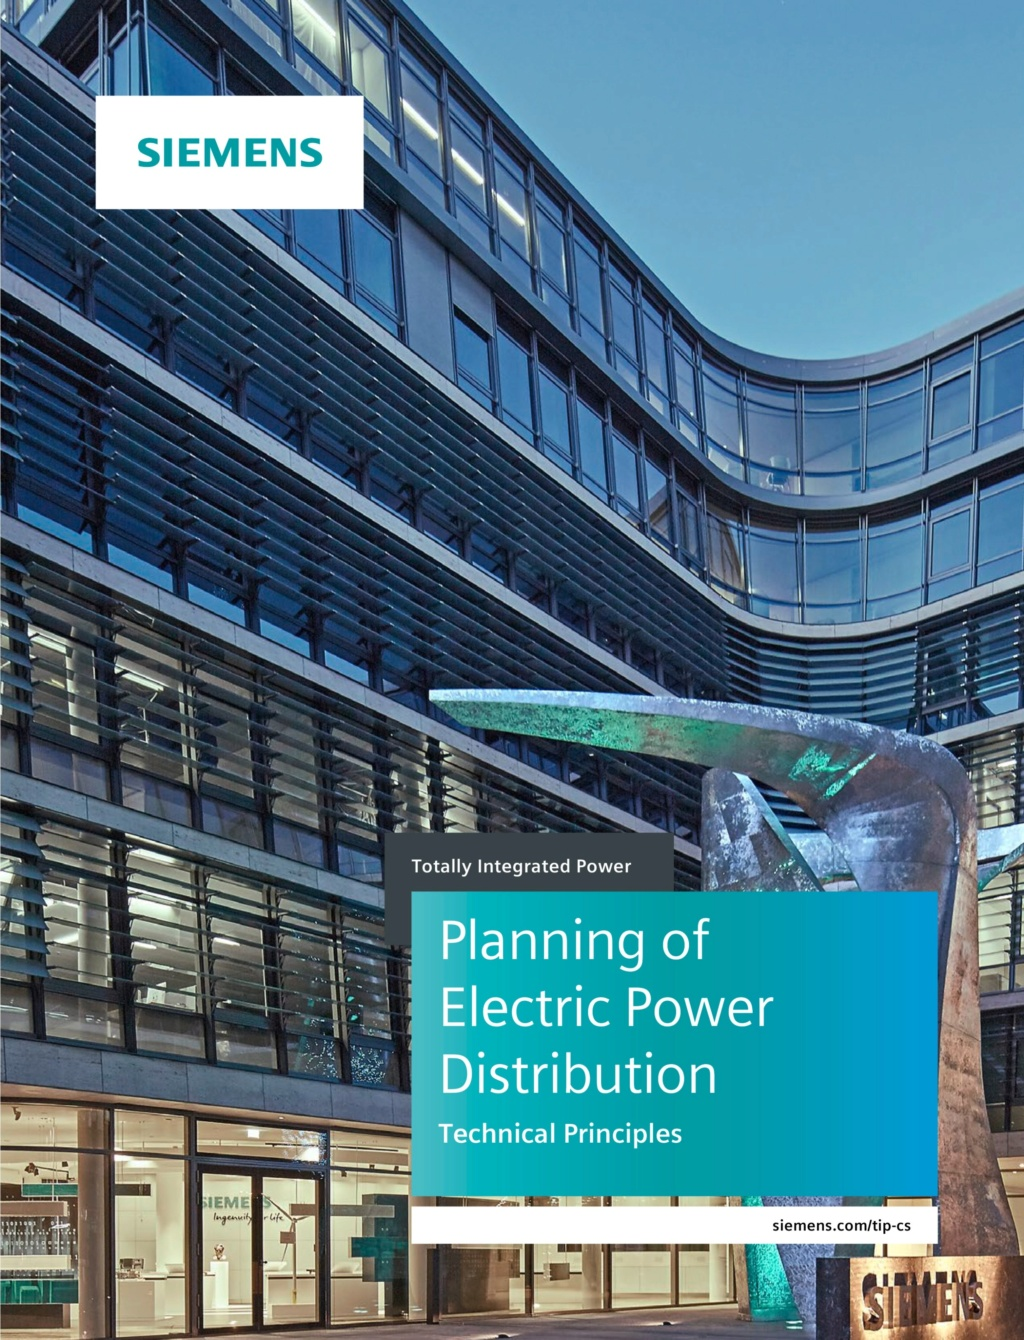 Planning of Electric Power Distribution Technical Principles (Siemens)